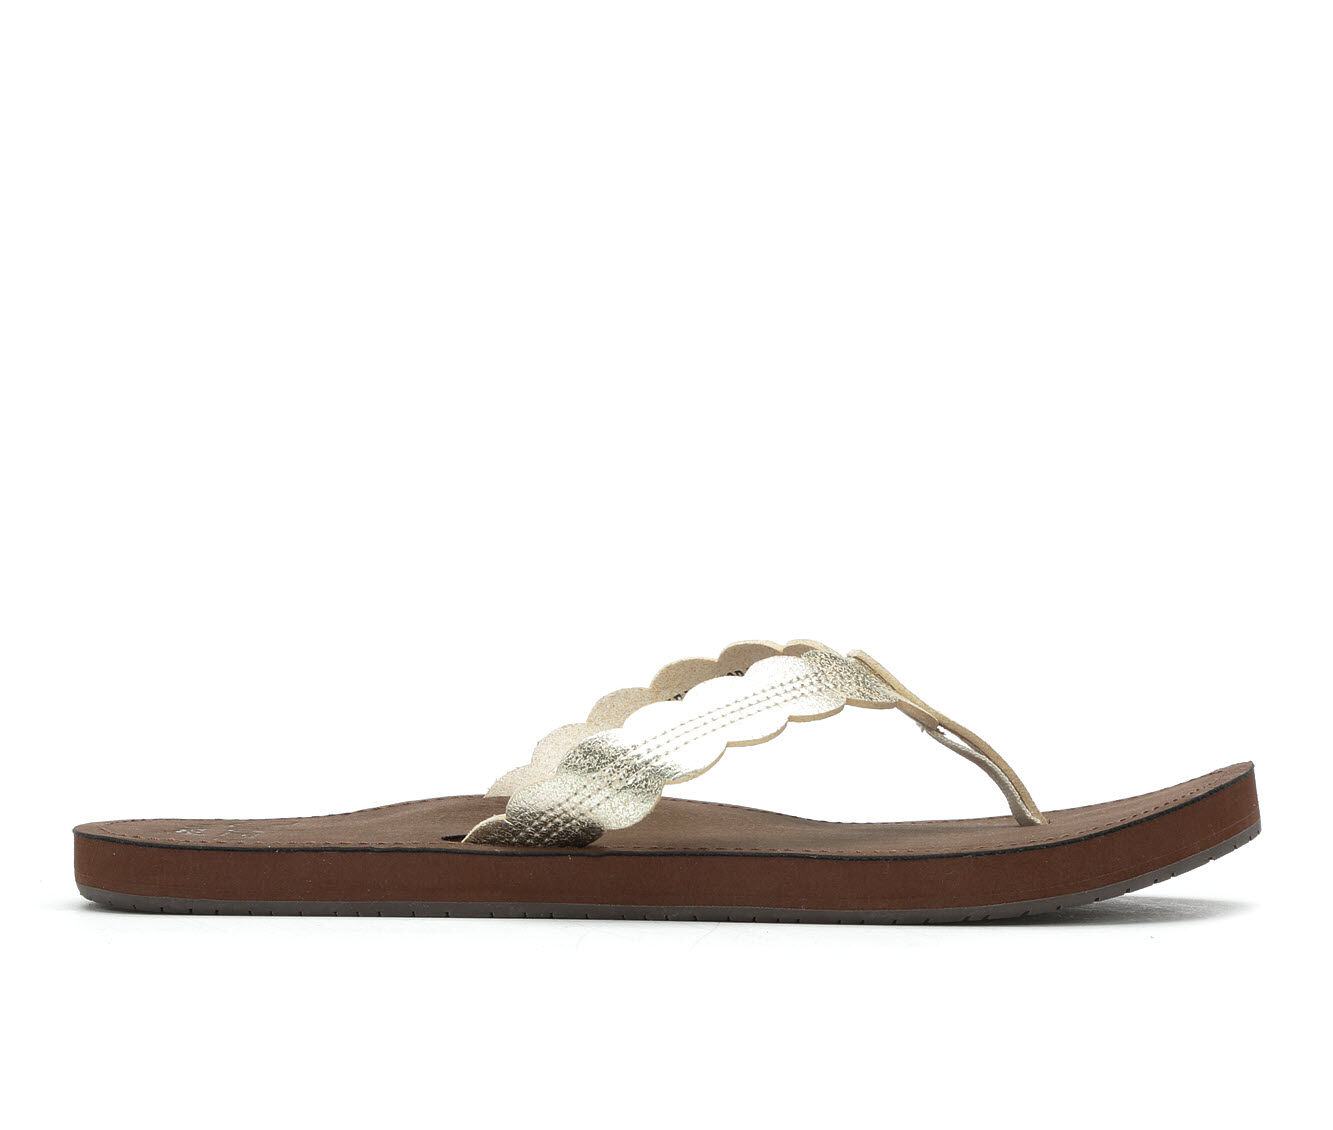 clearance sale Women's Reef Reef Cushion Celine Sandals Champagne